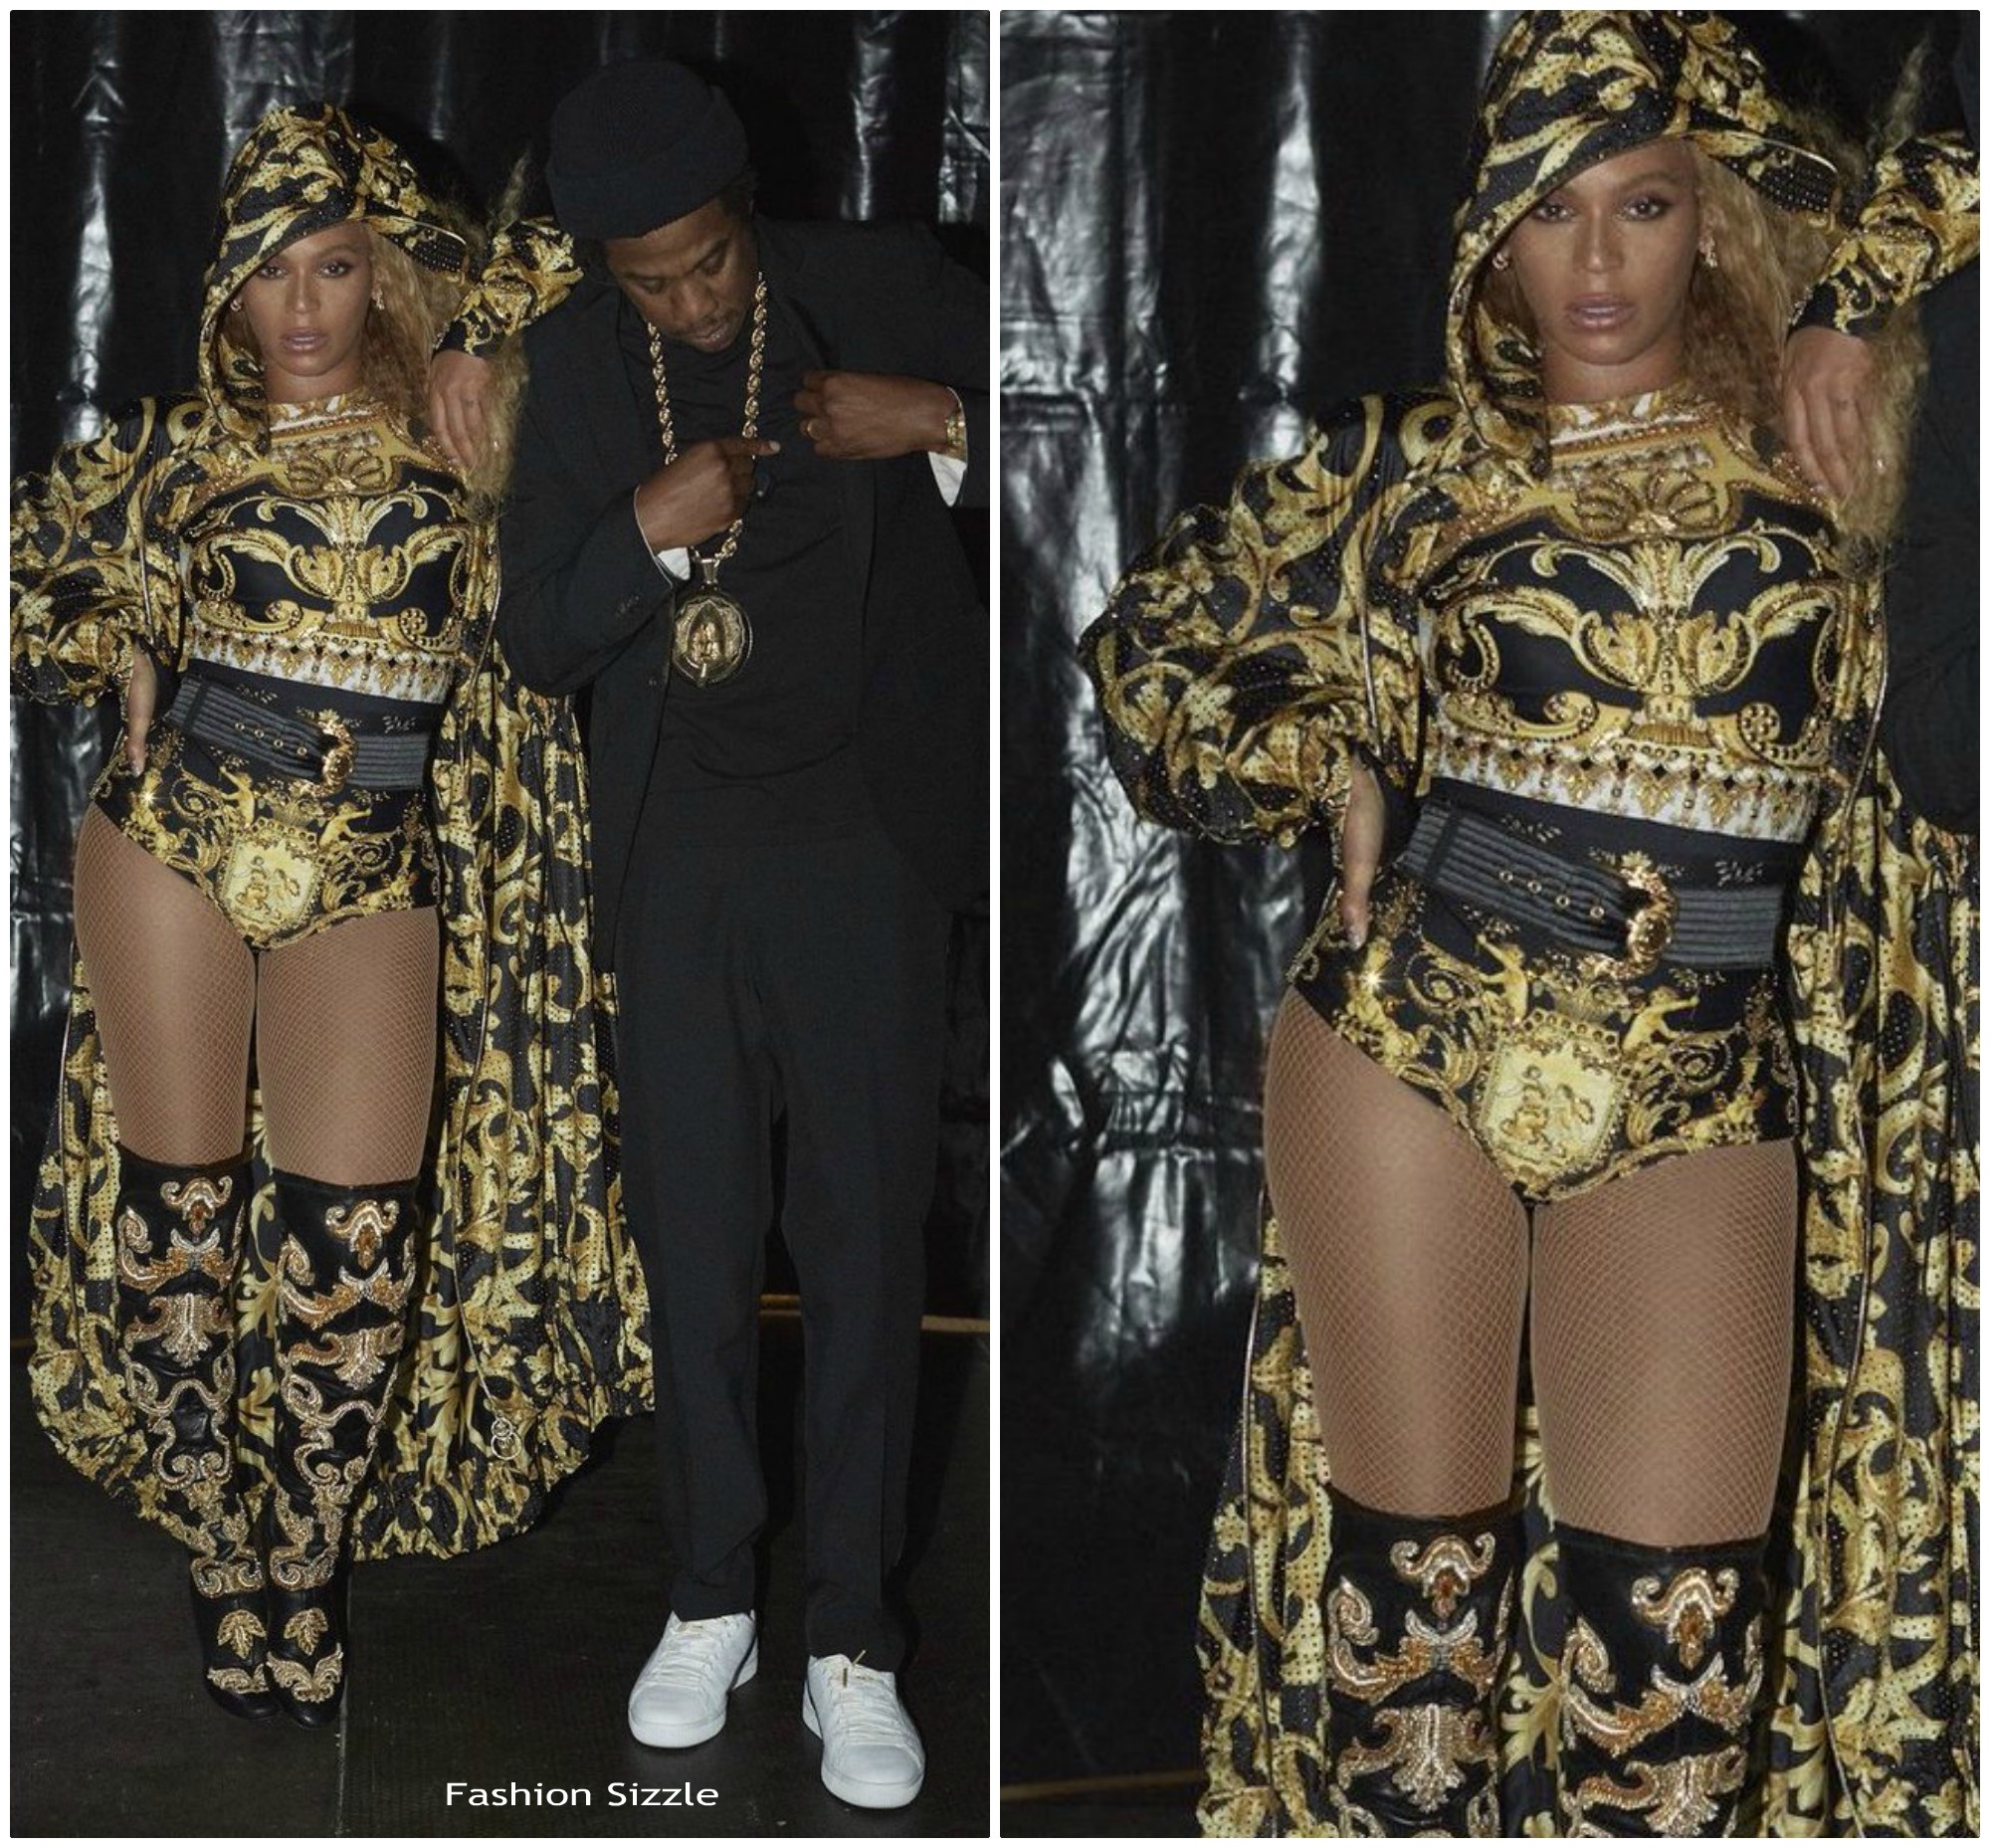 beyonce-knowles-in-valentino-on-the-run-11-tour-chicago